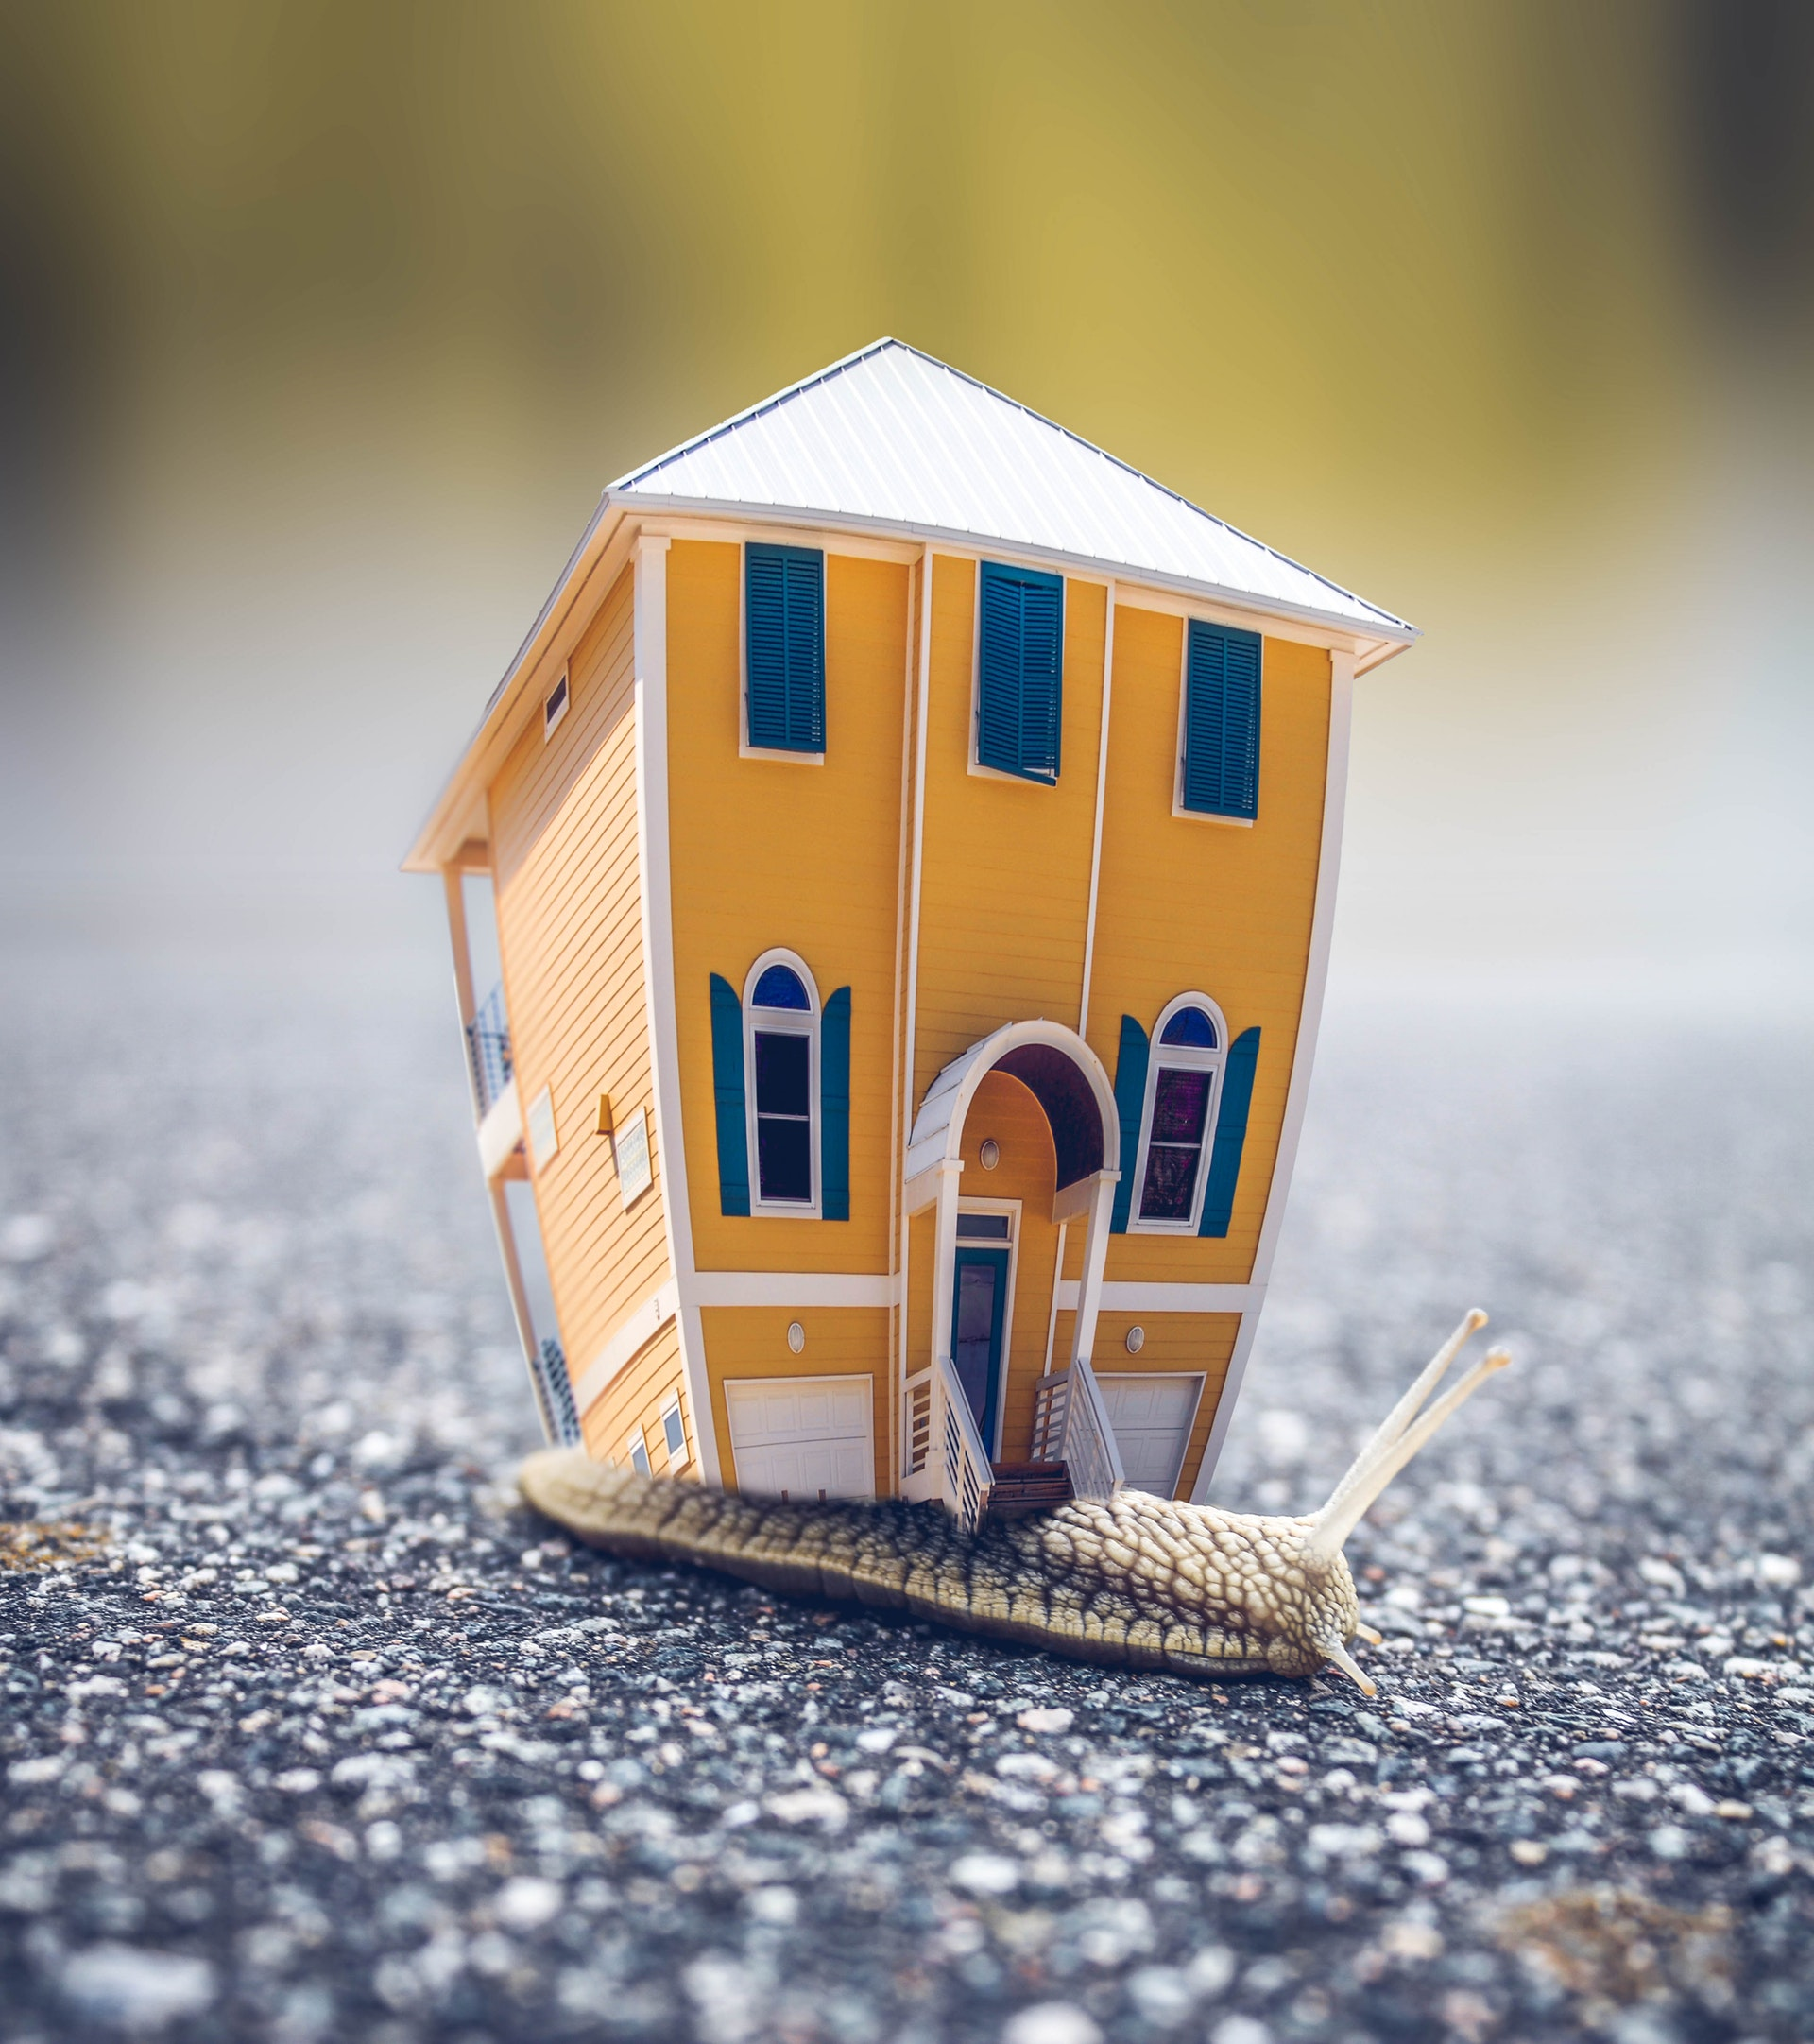 Problems That Can Arise When Buying A House